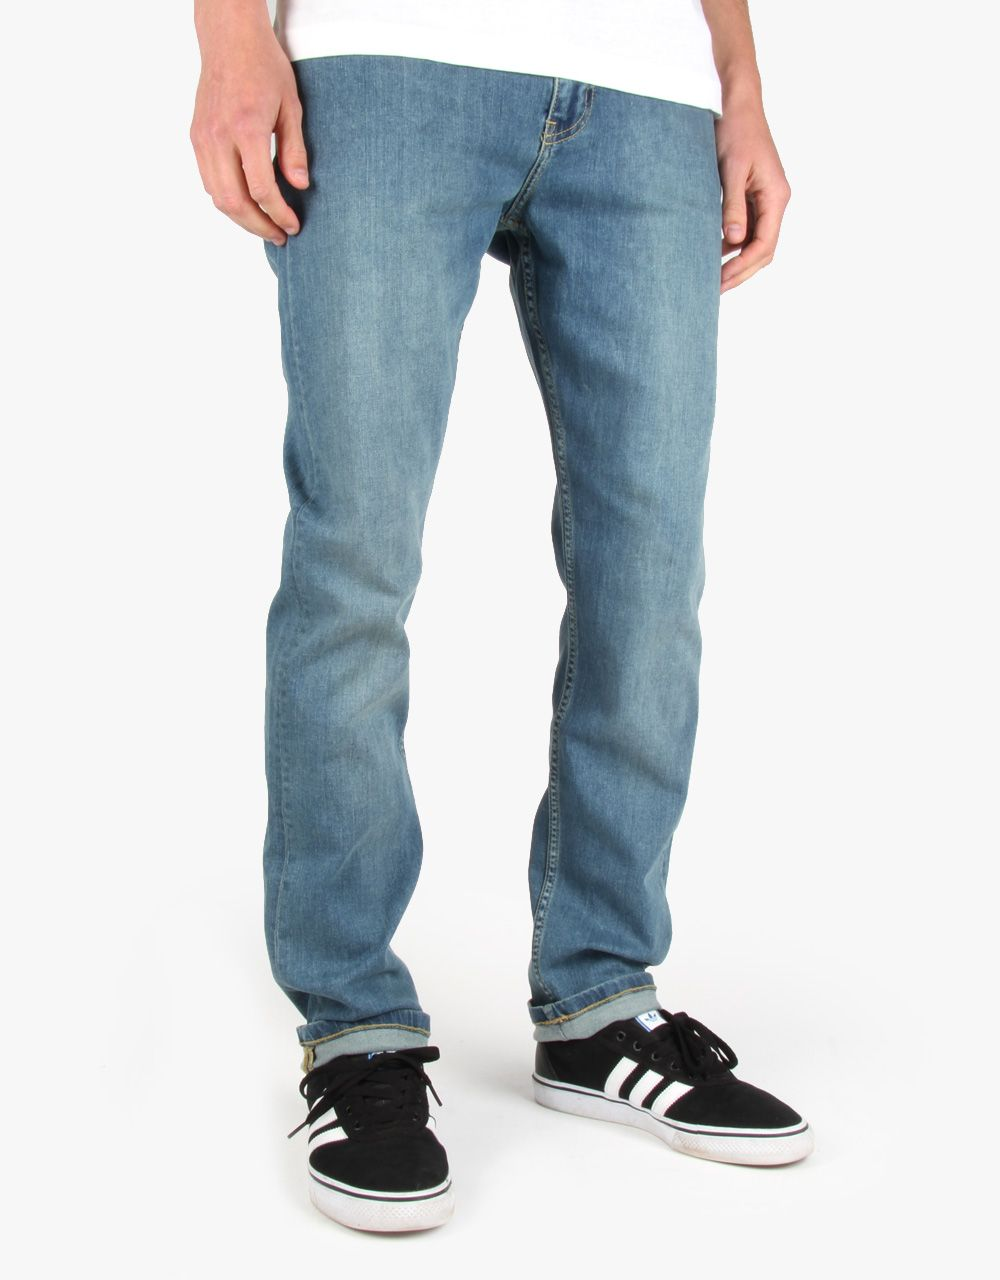 Route One Slim Denim Jeans - washed blue - Google Search